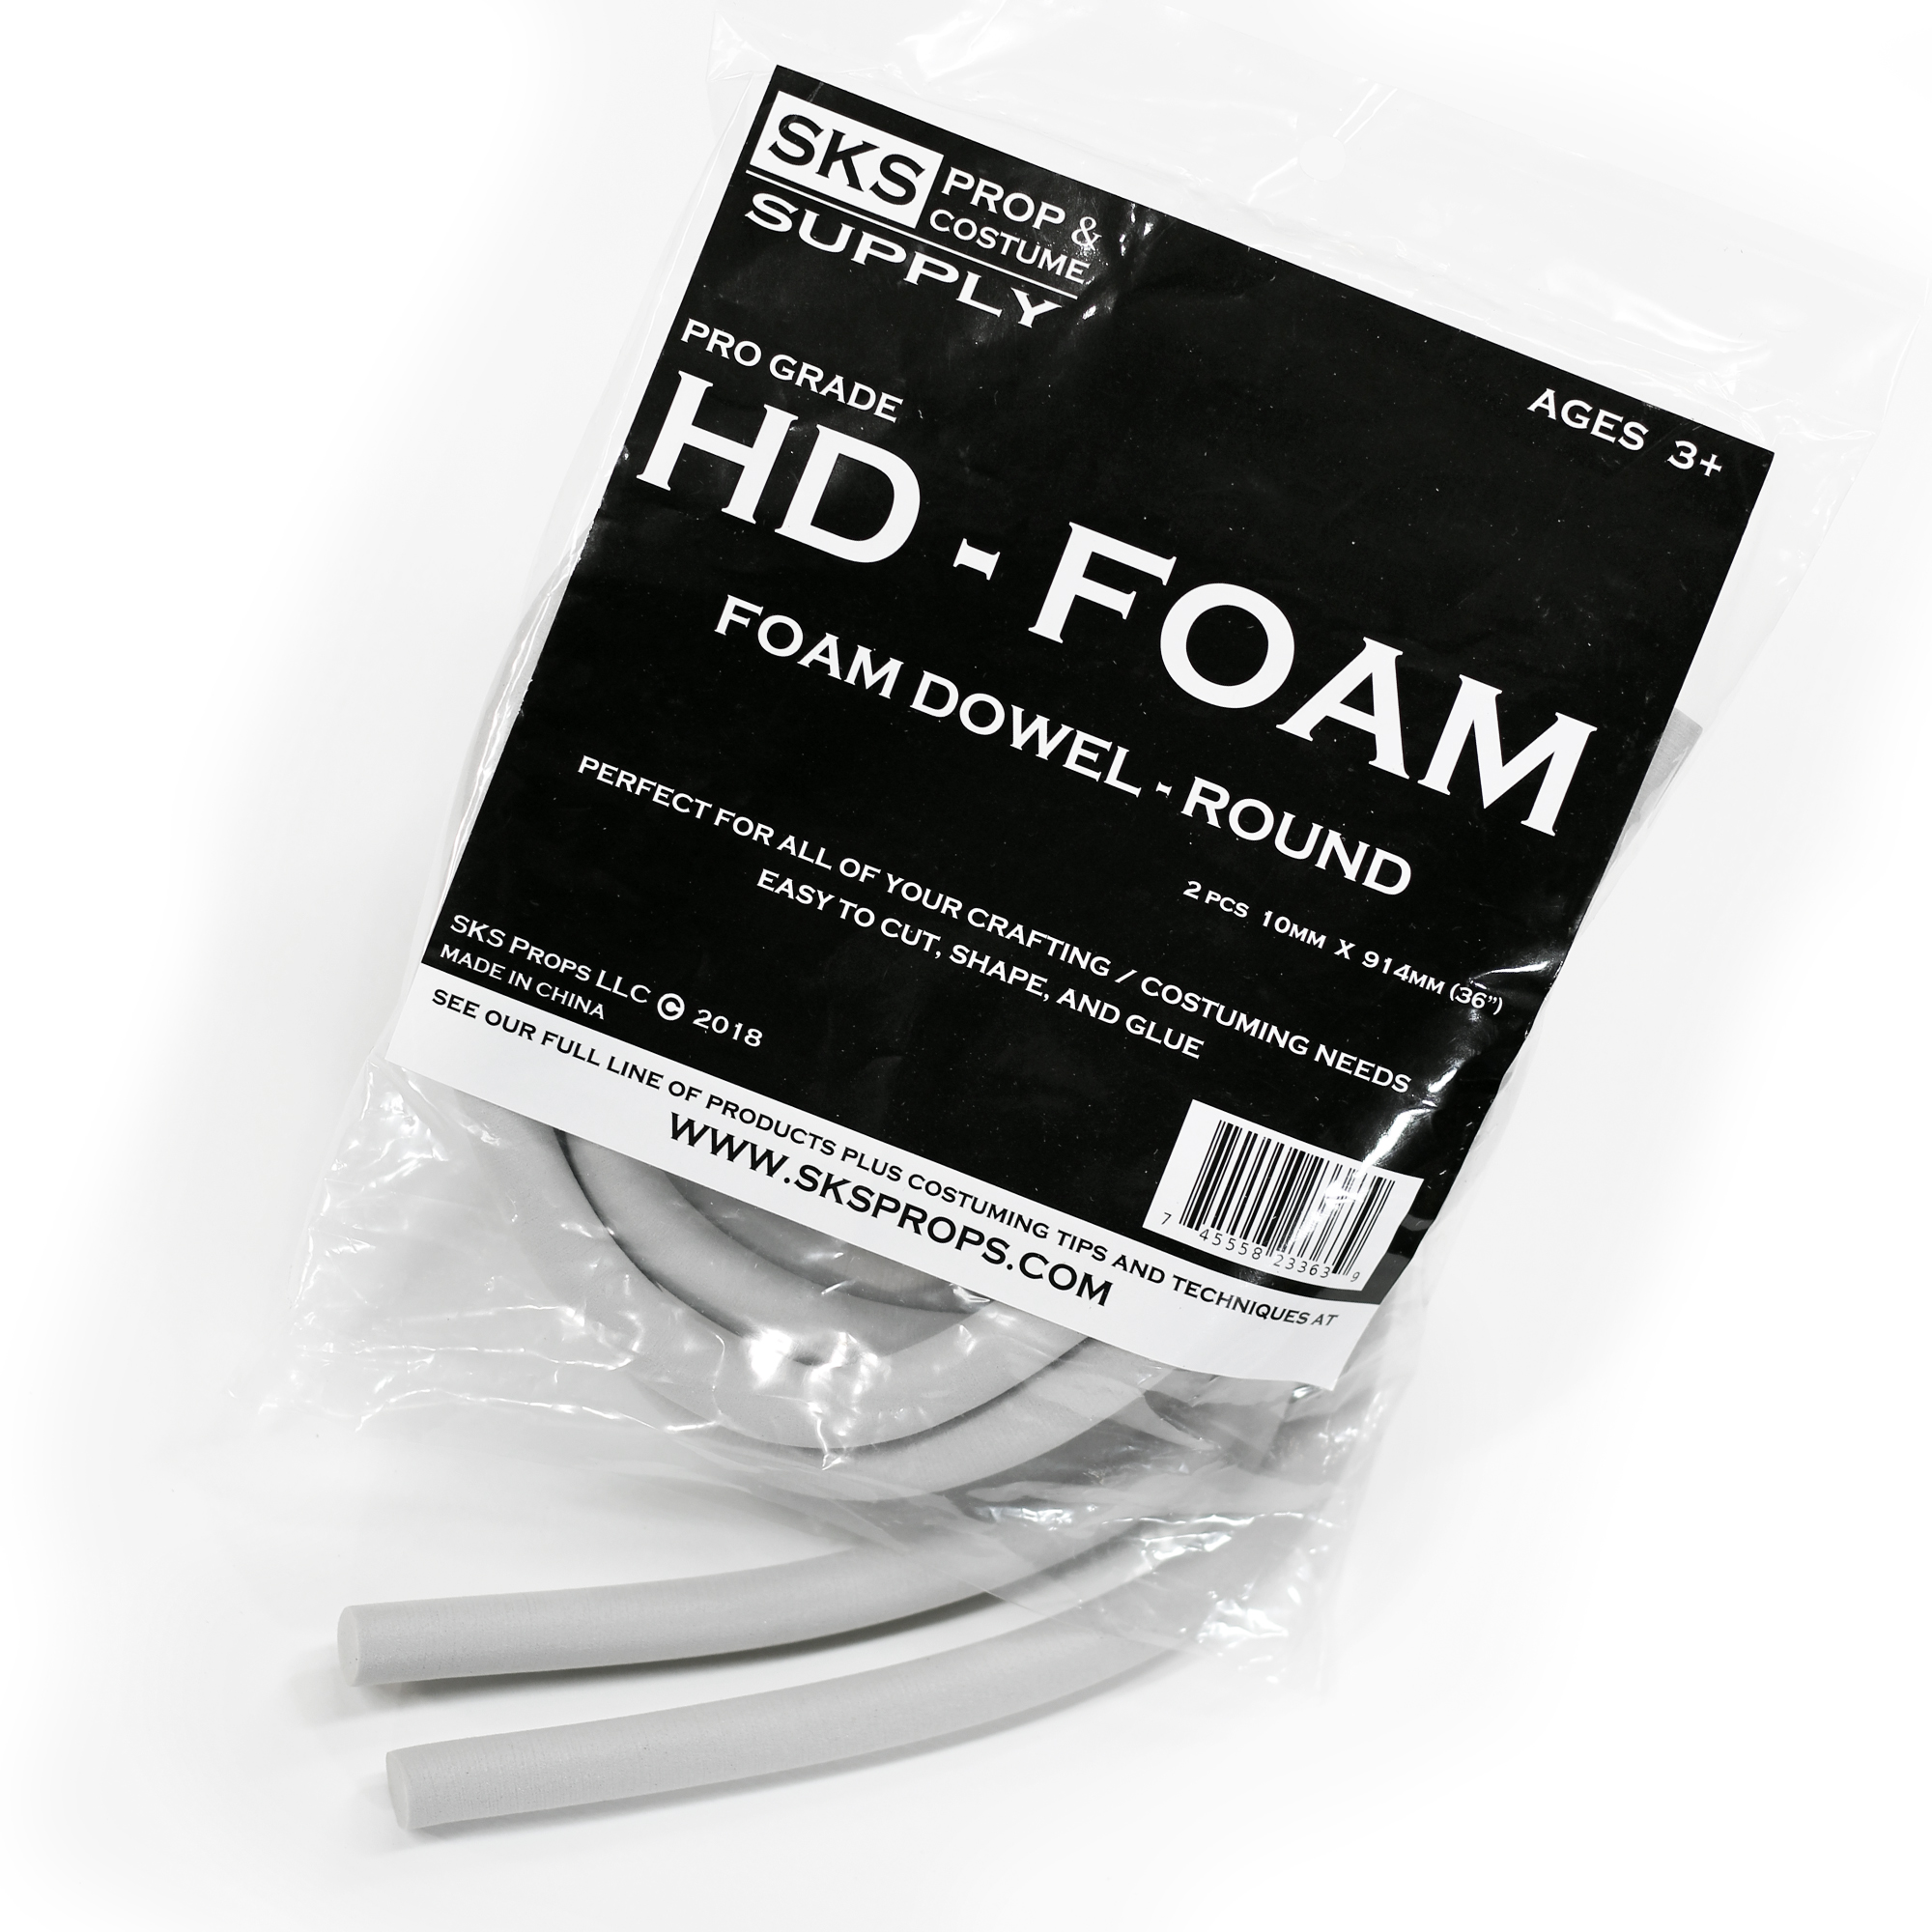 Foam Dowel Round 10mm.jpg